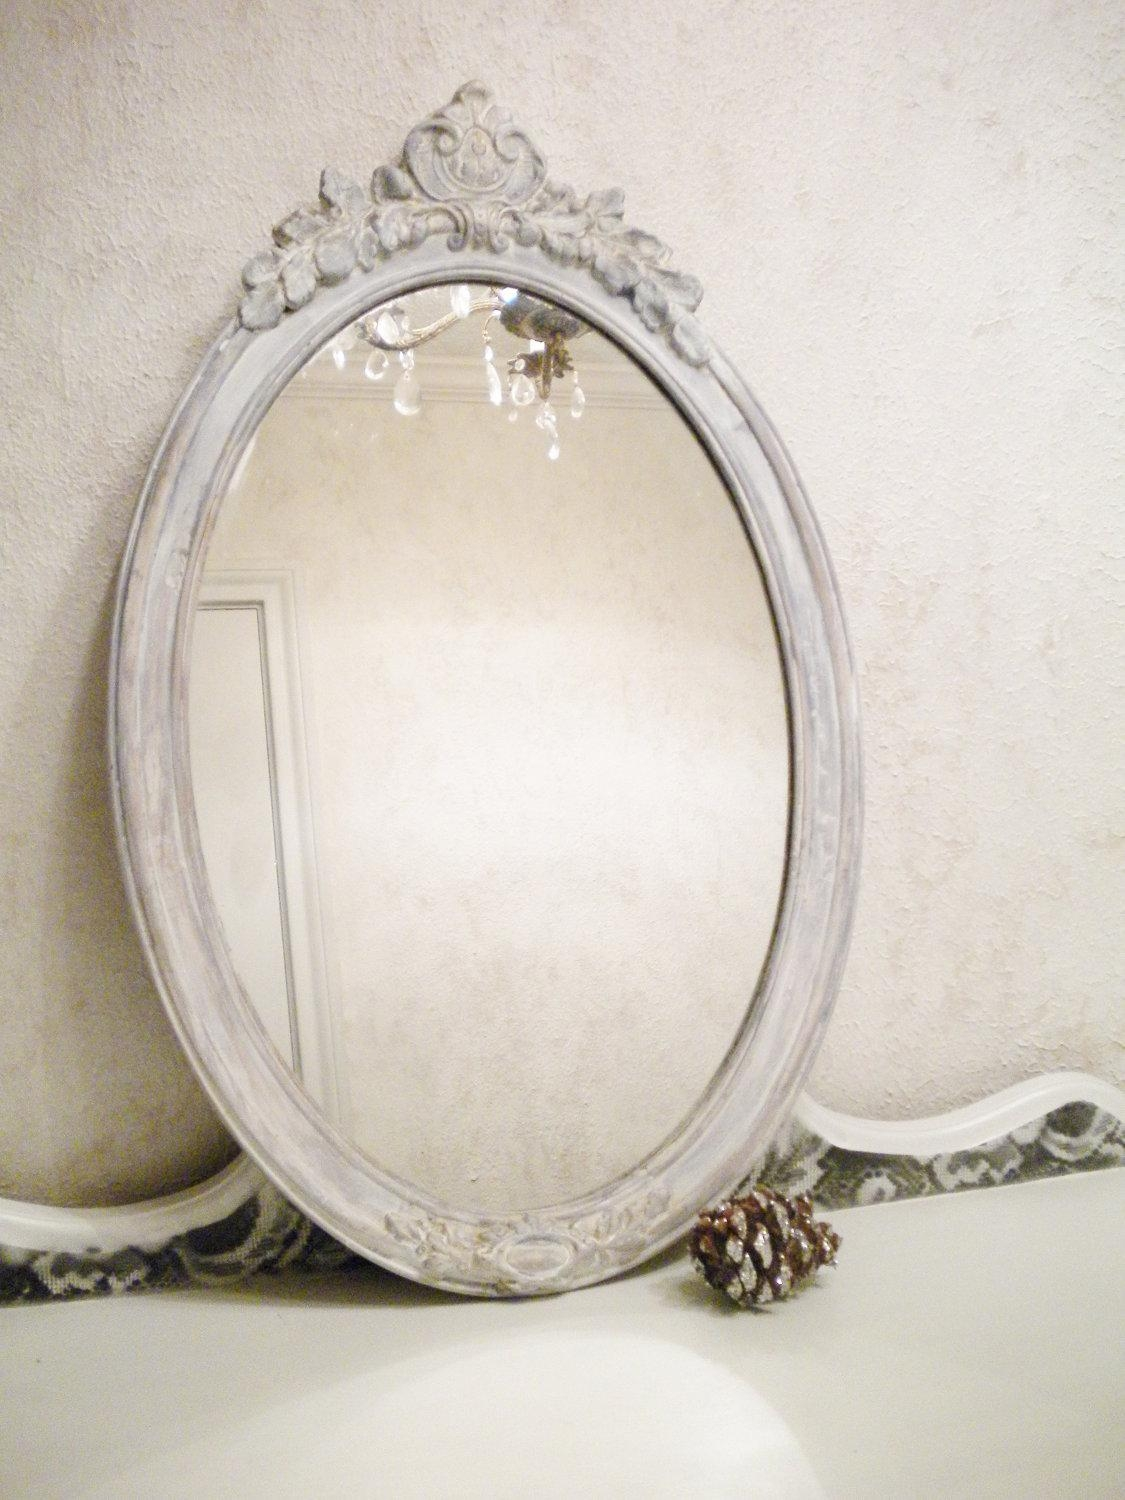 Peaceful Design Vintage Vanity Mirror Vintage Style Ladies Vanity Intended For Vintage Style Mirrors (Image 14 of 20)